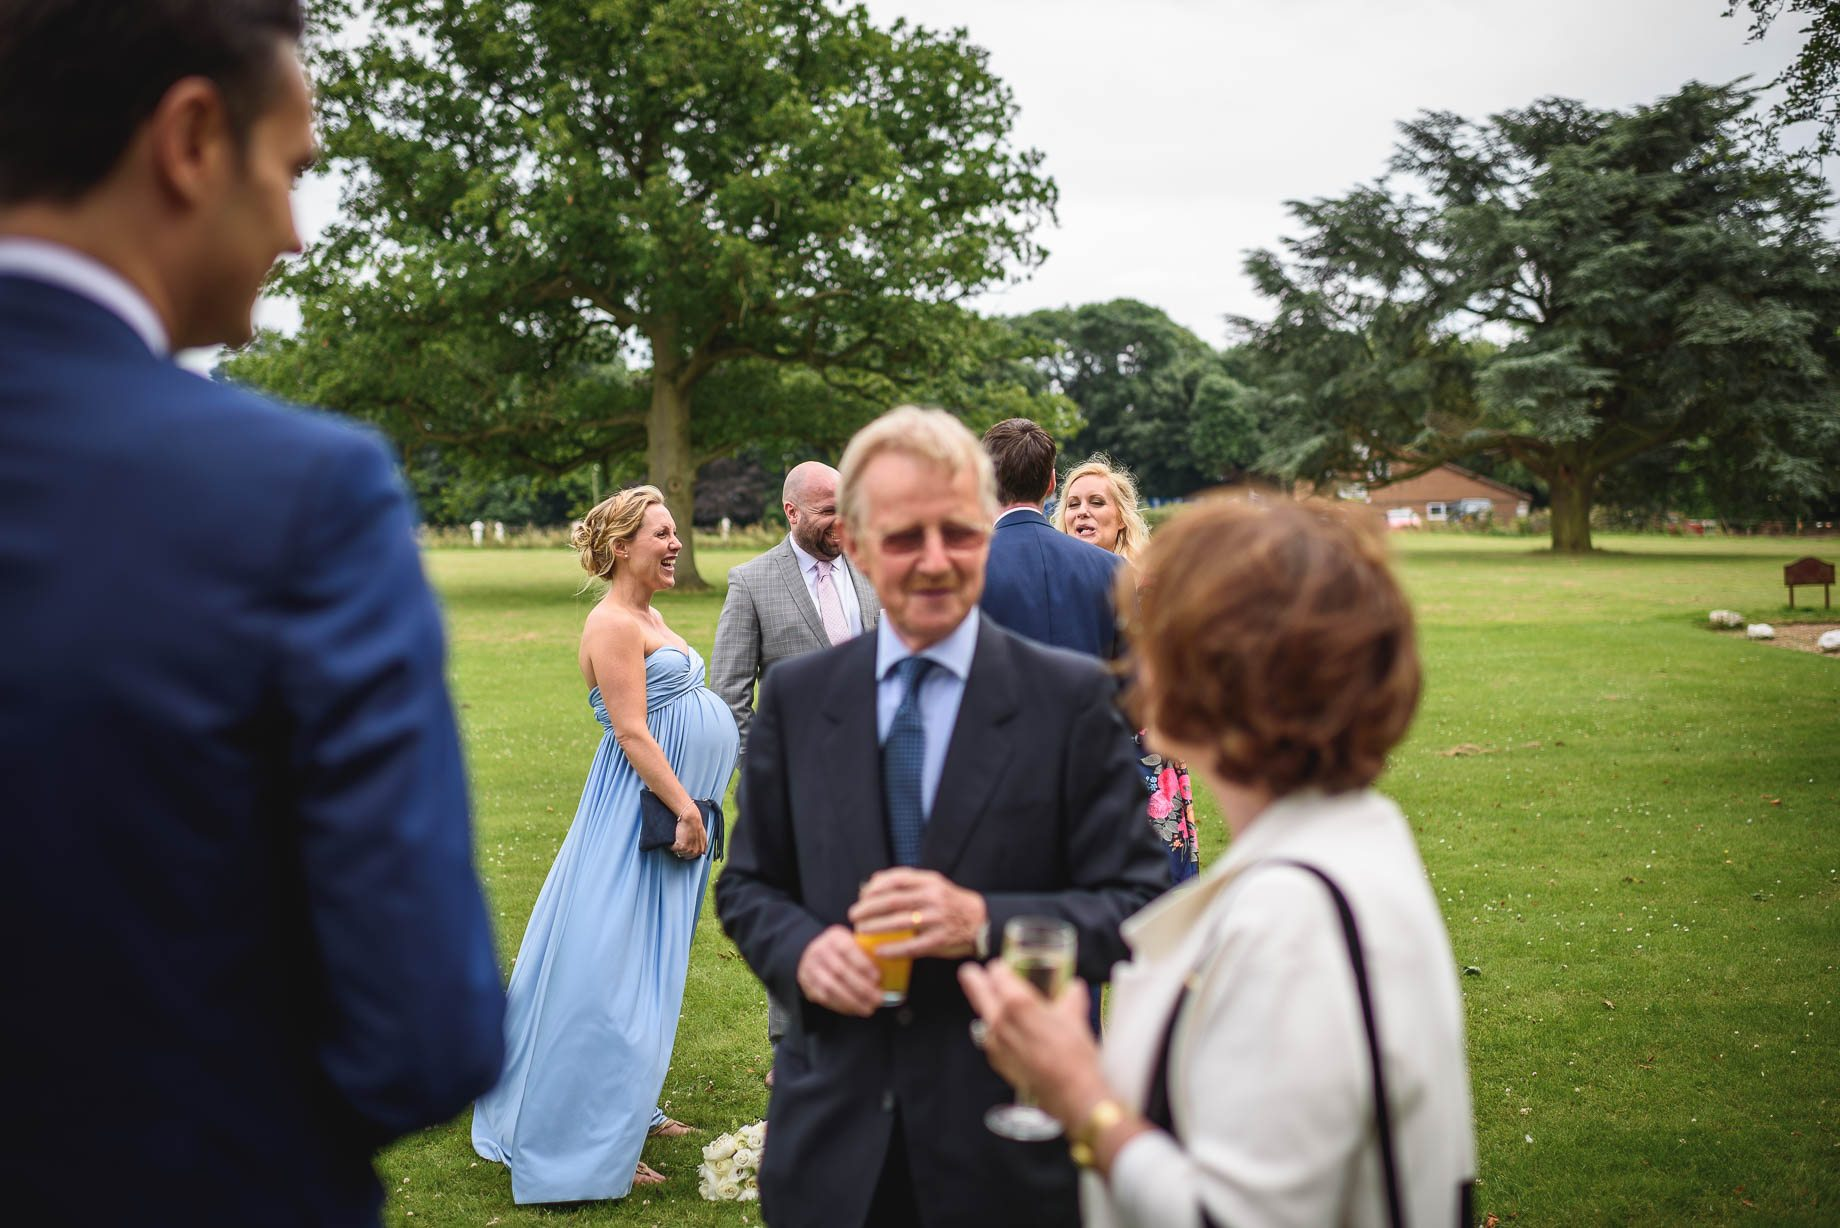 Hertfordshire wedding photography - Sarah and Stephen by Guy Collier Photography (98 of 161)